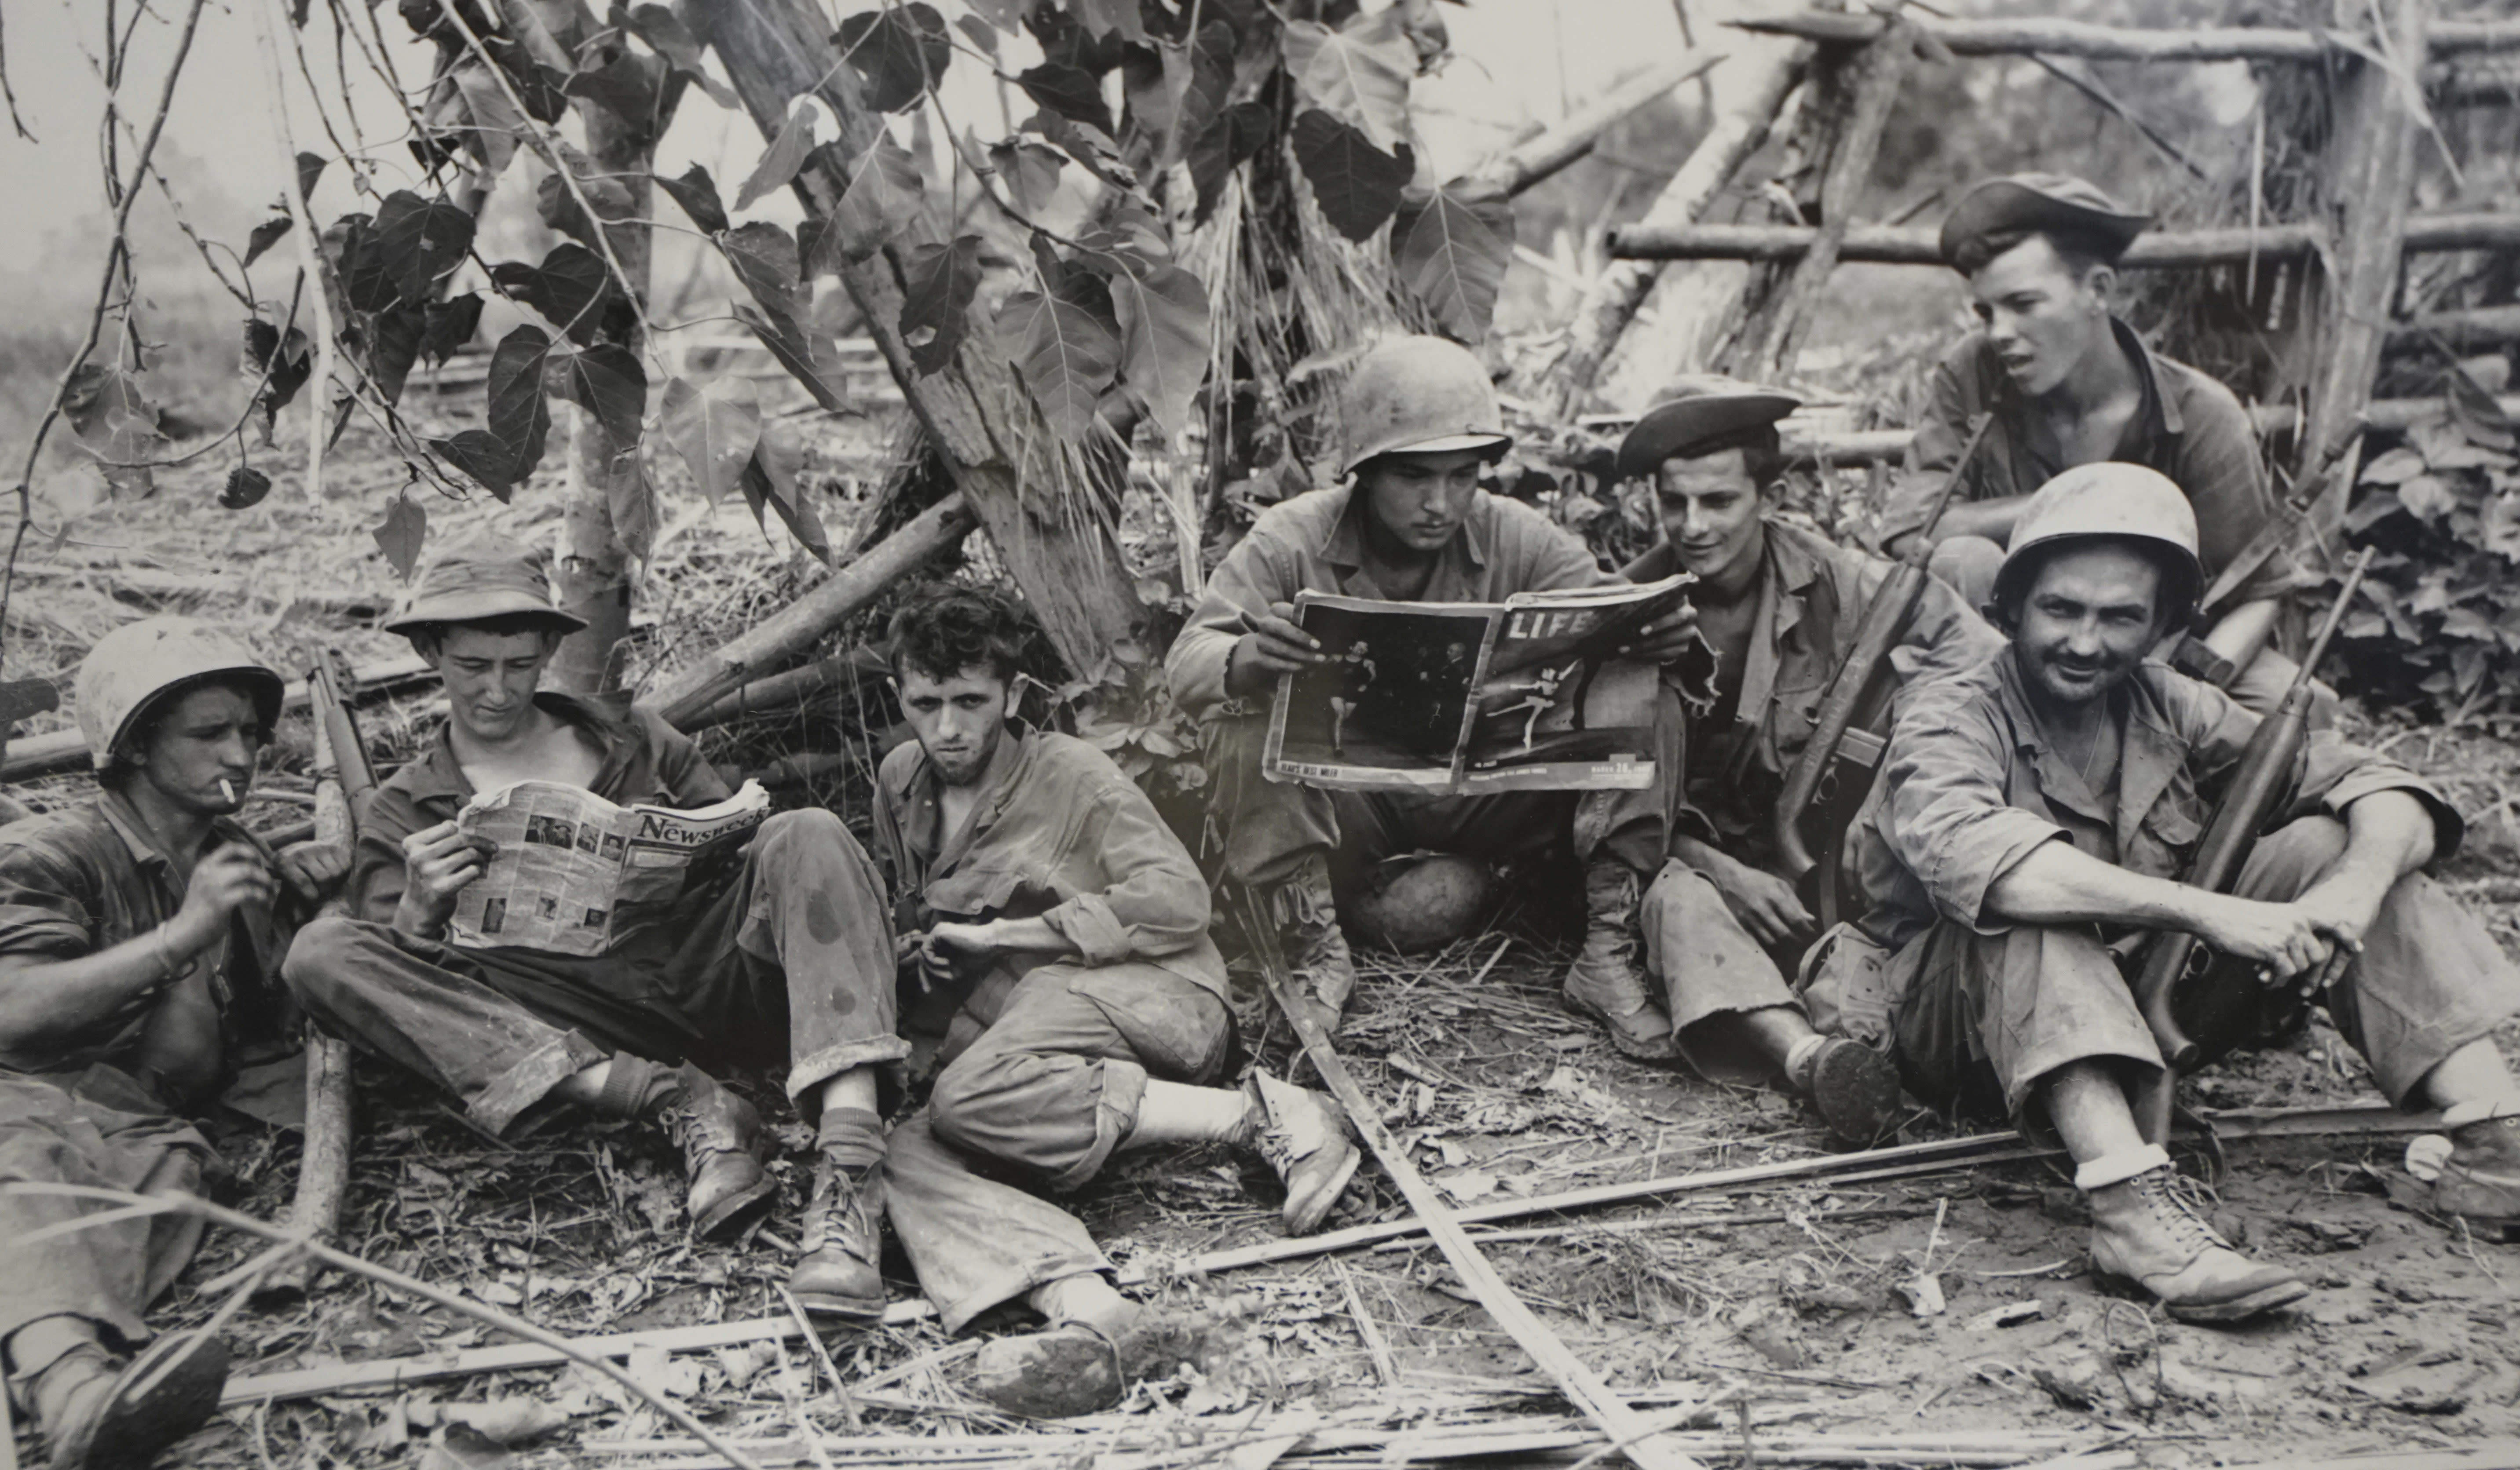 FILE - This Aug. 2, 1944 photo, courtesy of the U.S. Army Signal Corps, shows members of the famed WWII Army unit Merrill's Marauders less than 75 yards from enemy positions, on display during a gathering of remaining members, family and history buffs, in New Orleans. The unit that spent months marching and fighting behind enemy lines in Burma has been approved to receive the Congressional Gold Medal, Congress' highest honor. Nearly 3,000 soldiers began the unit's secret mission in Japanese occupied Burma in 1944. Barely 200 remained in the fight when their mission was completed five months later. (U.S. Army Signal Corps via AP, File)